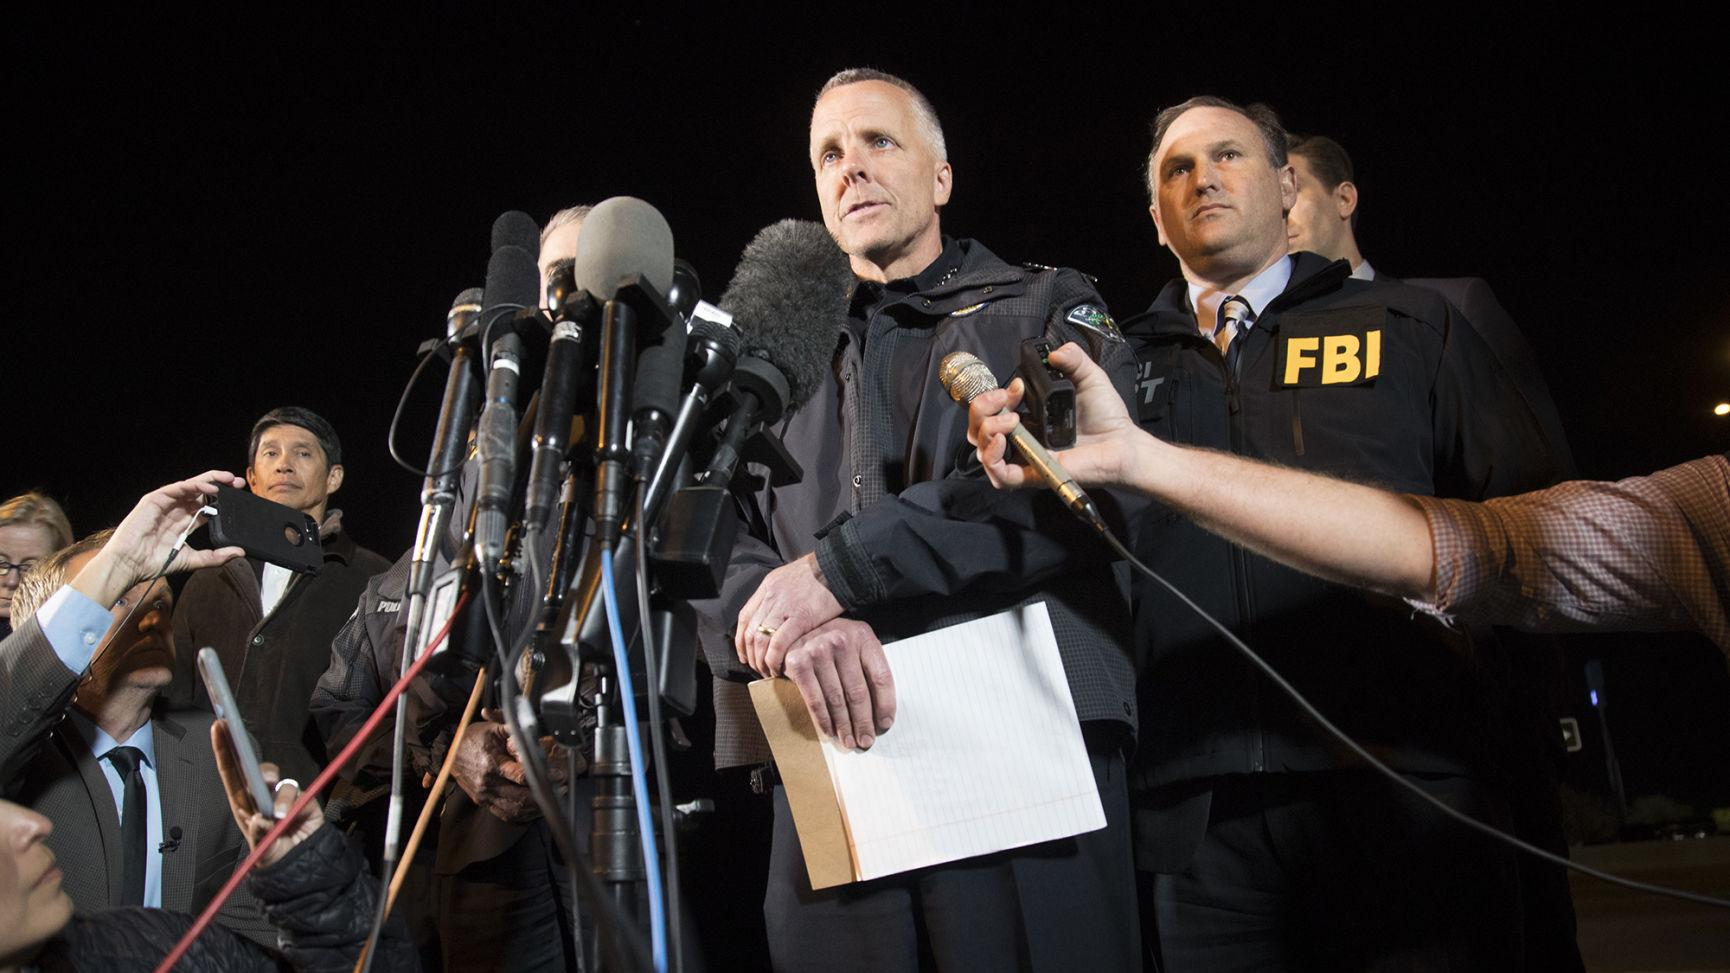 How a phone may have steered hunt for Austin bomber